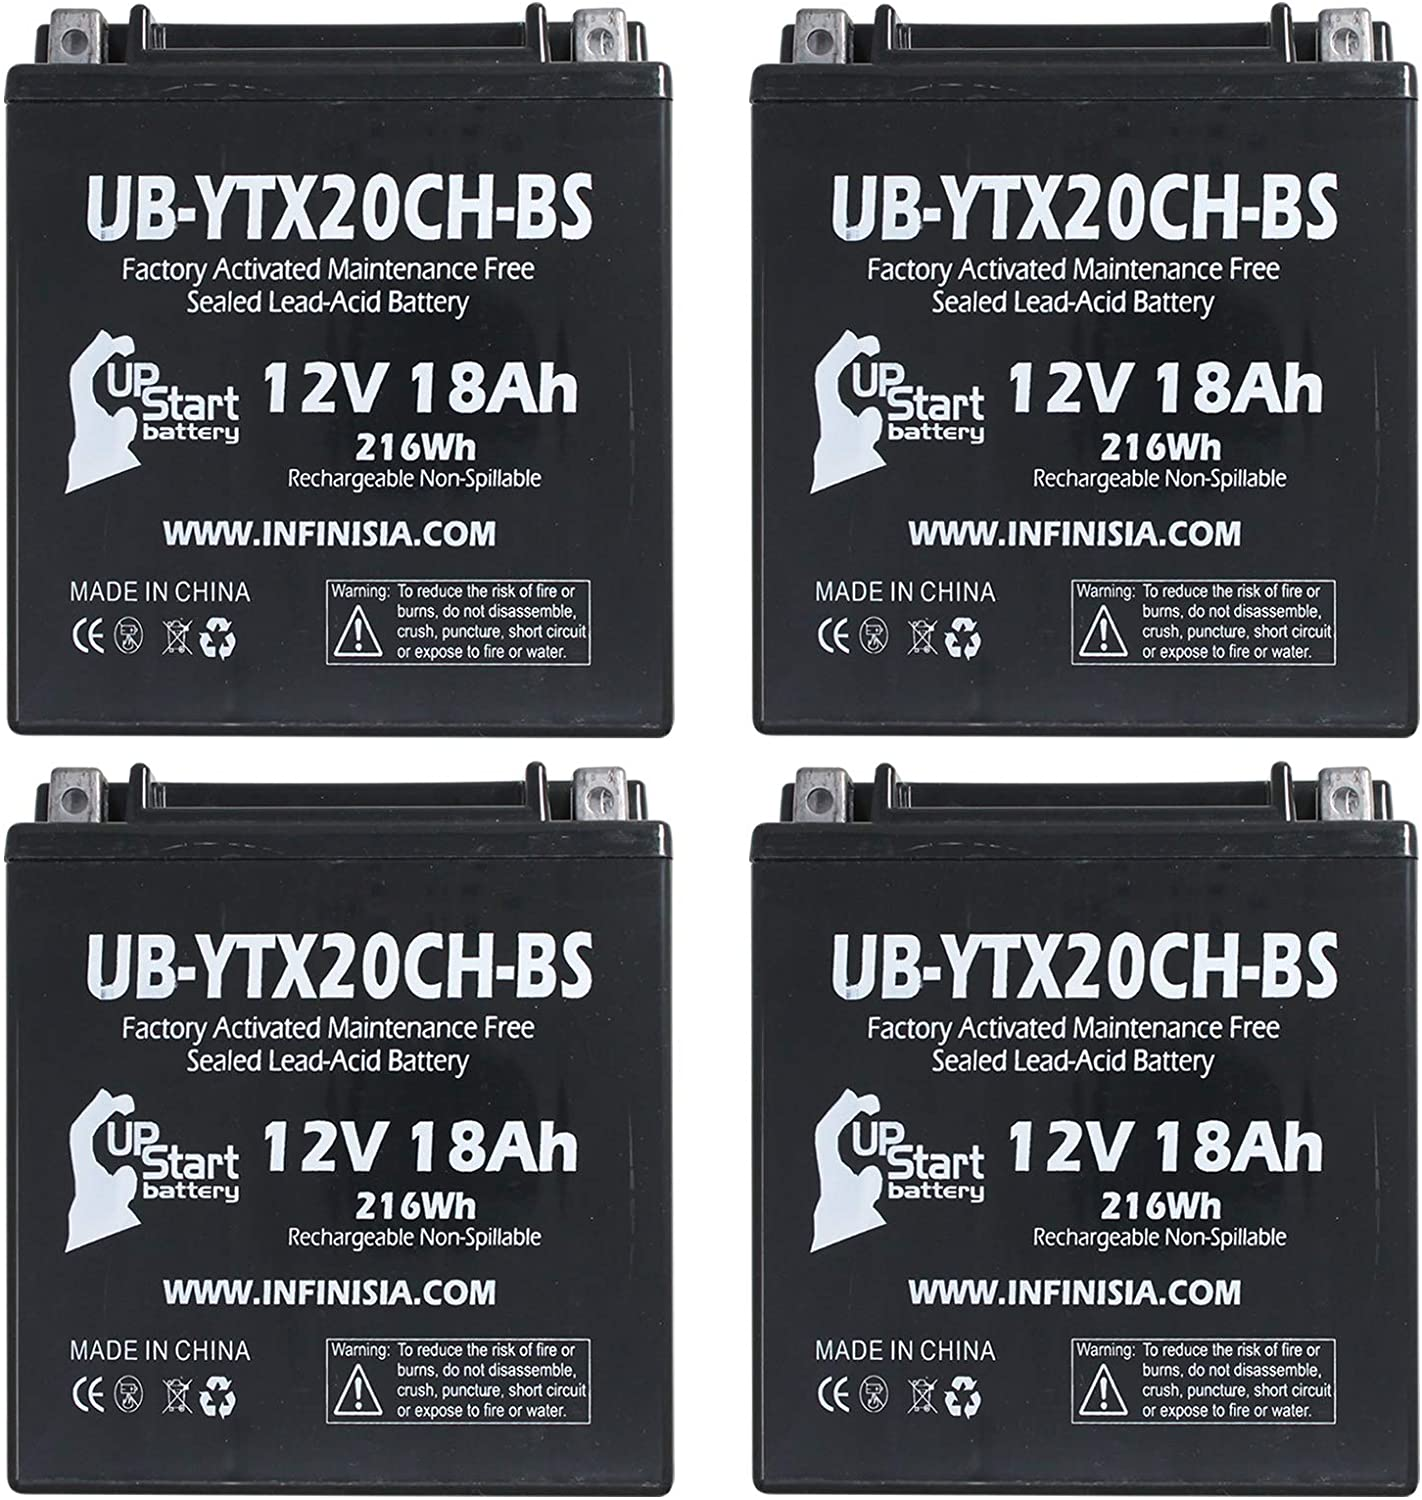 4-Pack UB-YTX20CH-BS Battery Replacement for 2010 Piaggio-Gilera Fuoco 500ie 500 CC Scooter - Factory Activated, Maintenance Free, Motorcycle Battery - 12V, 18AH, UpStart Battery Brand